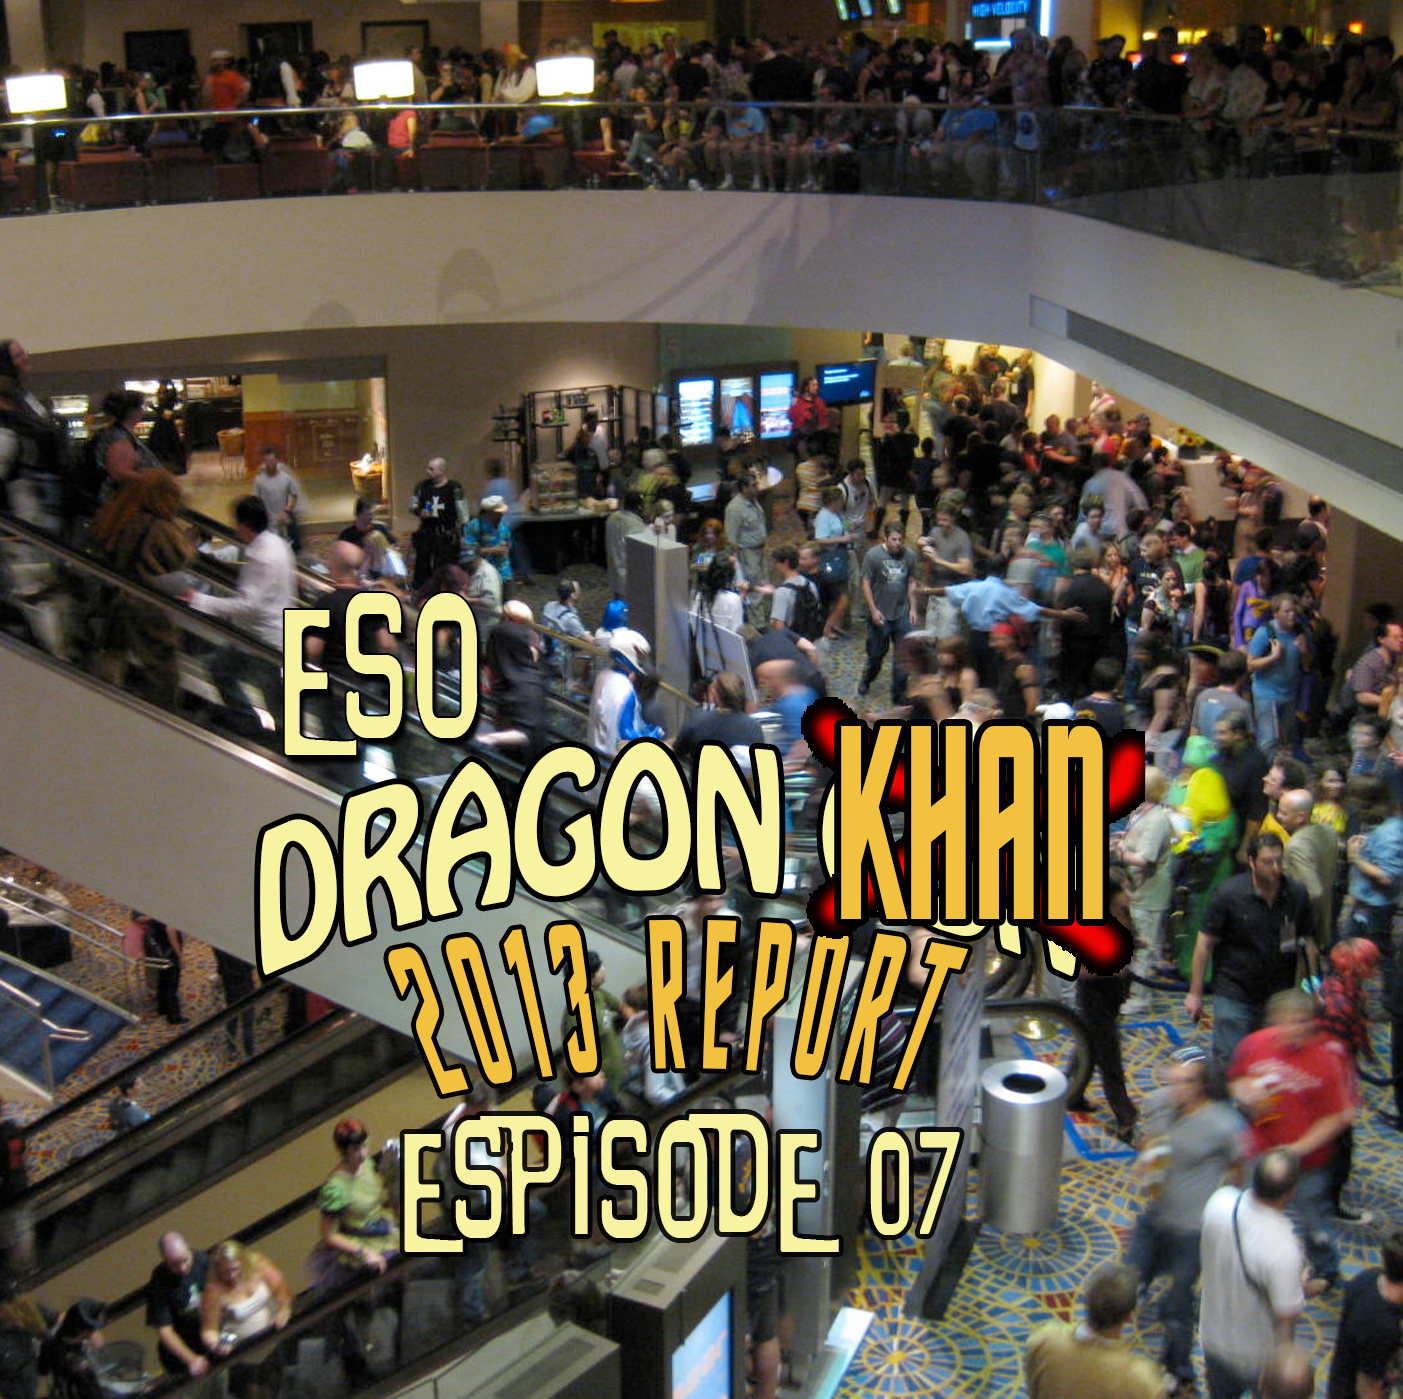 ESO Dragon Con 2013 Khan Report Ep 7